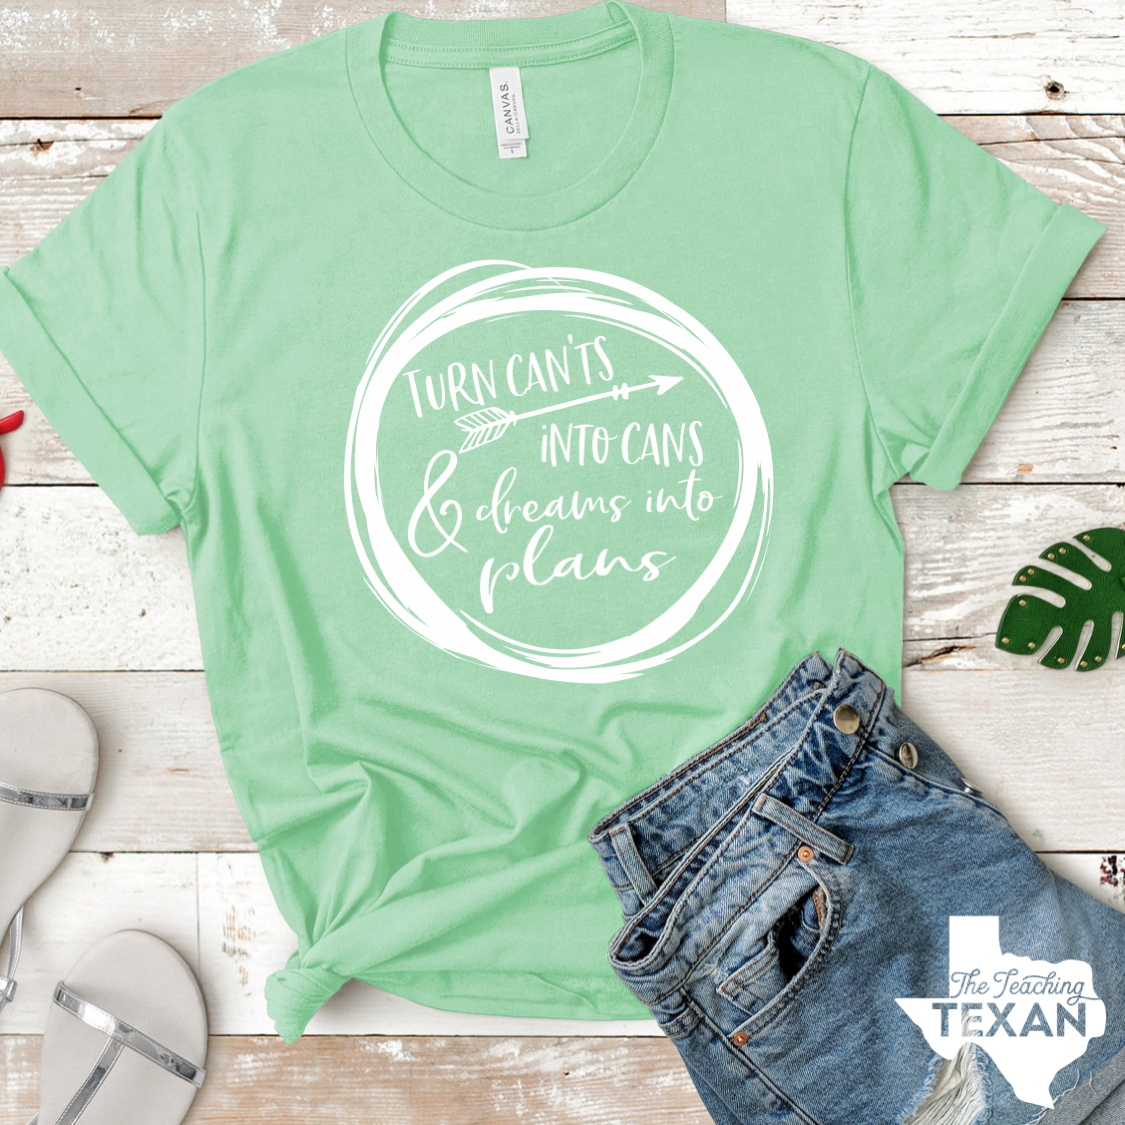 The Teaching Texan T-Shirt Cants into Cans